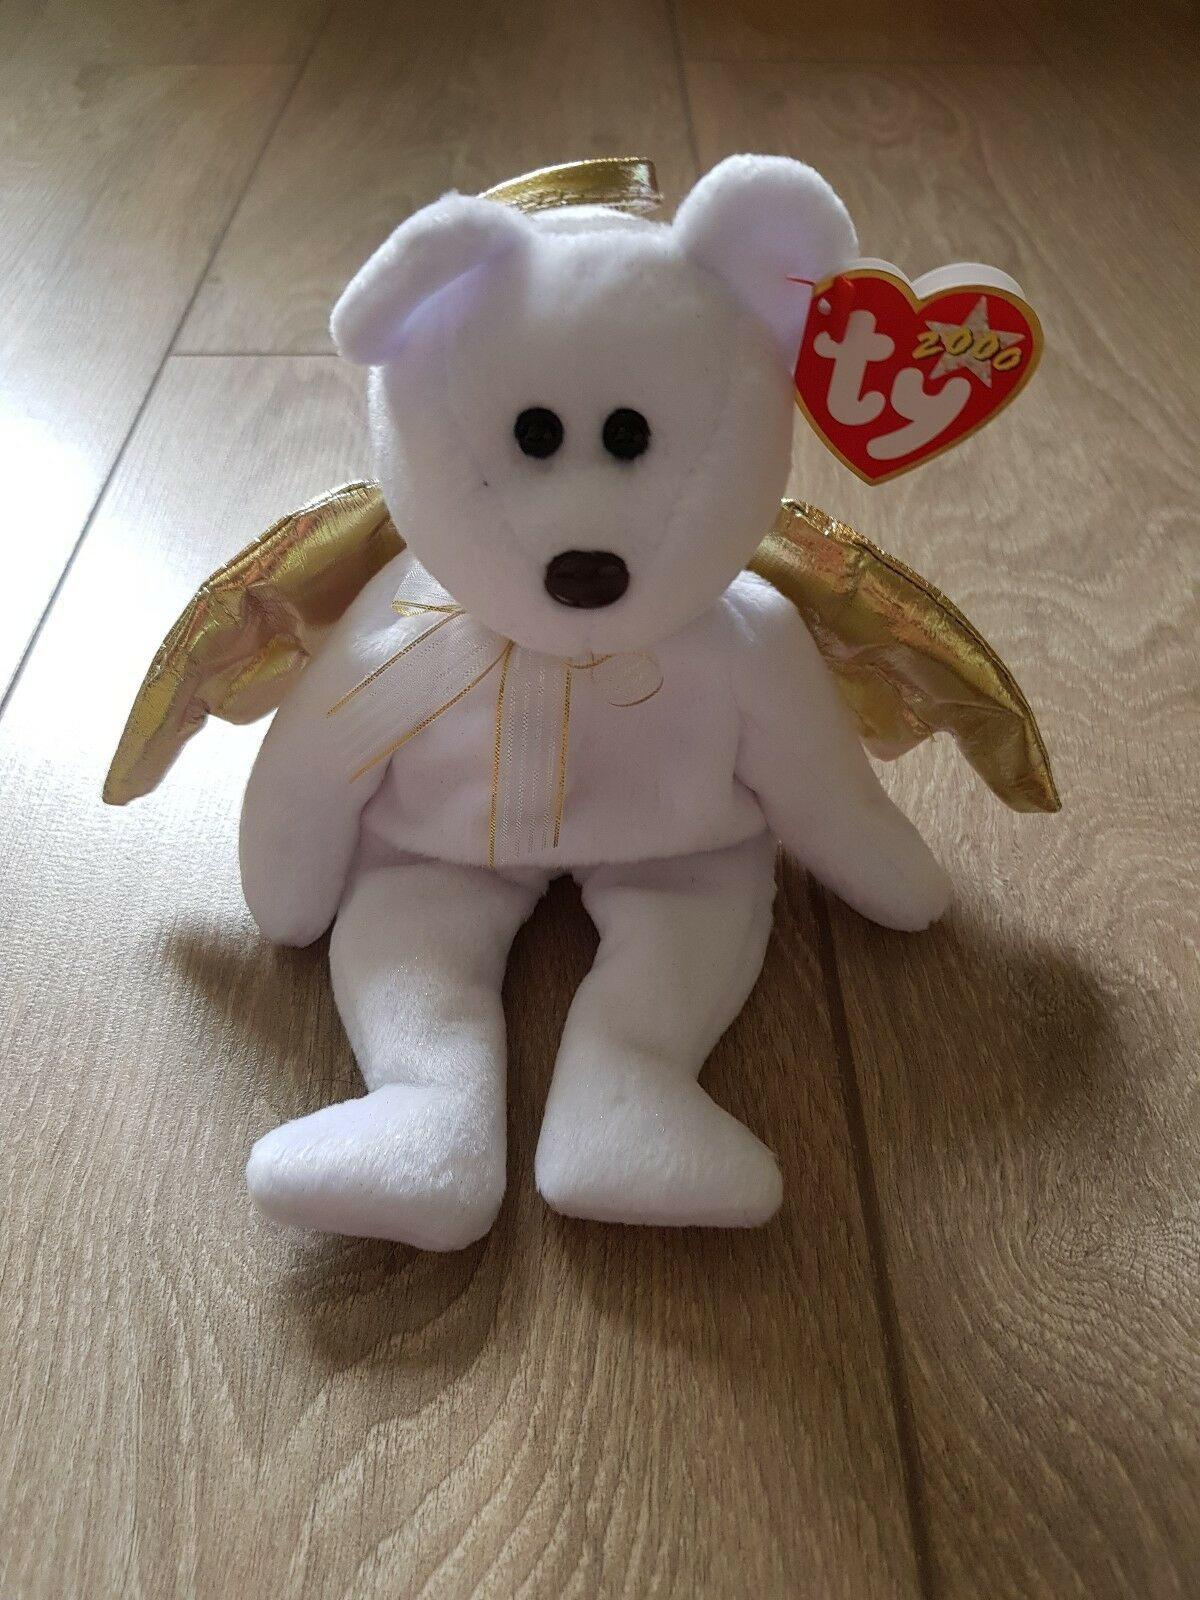 TY beanie baby 'HALO 2' the bear, has  RARE  'stunning'  golden wings